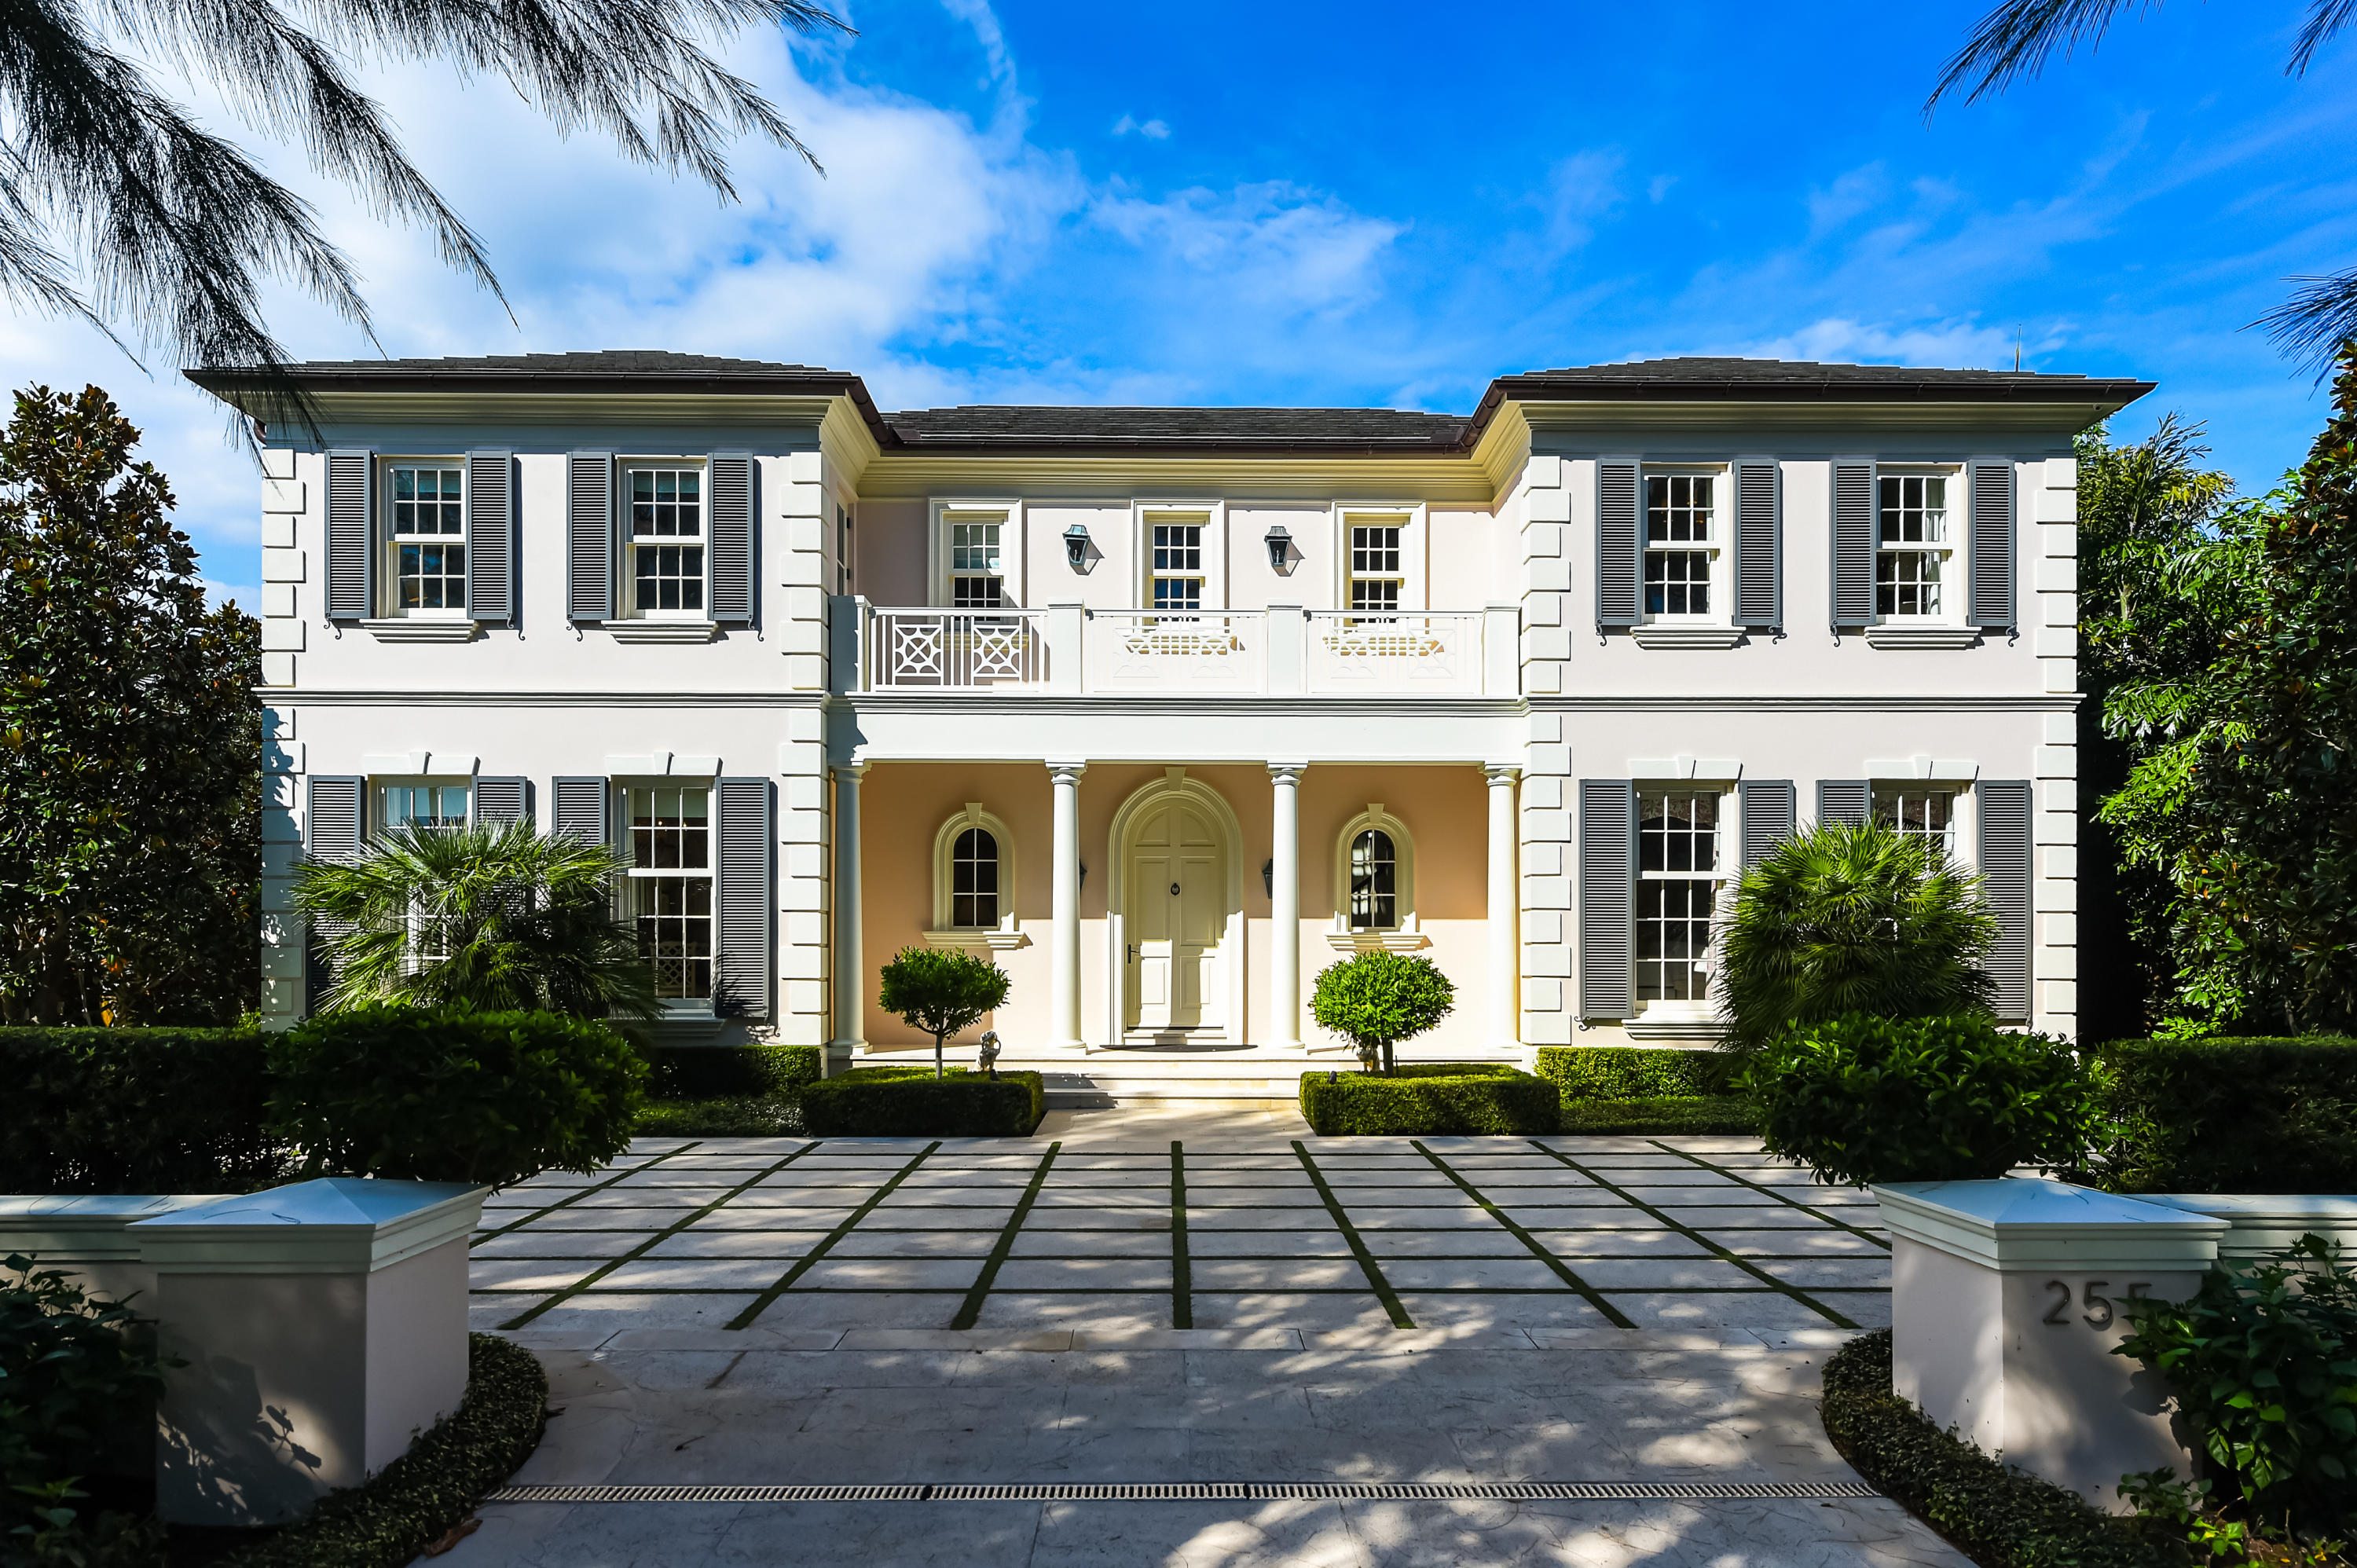 New Home for sale at 255 Wells Road in Palm Beach